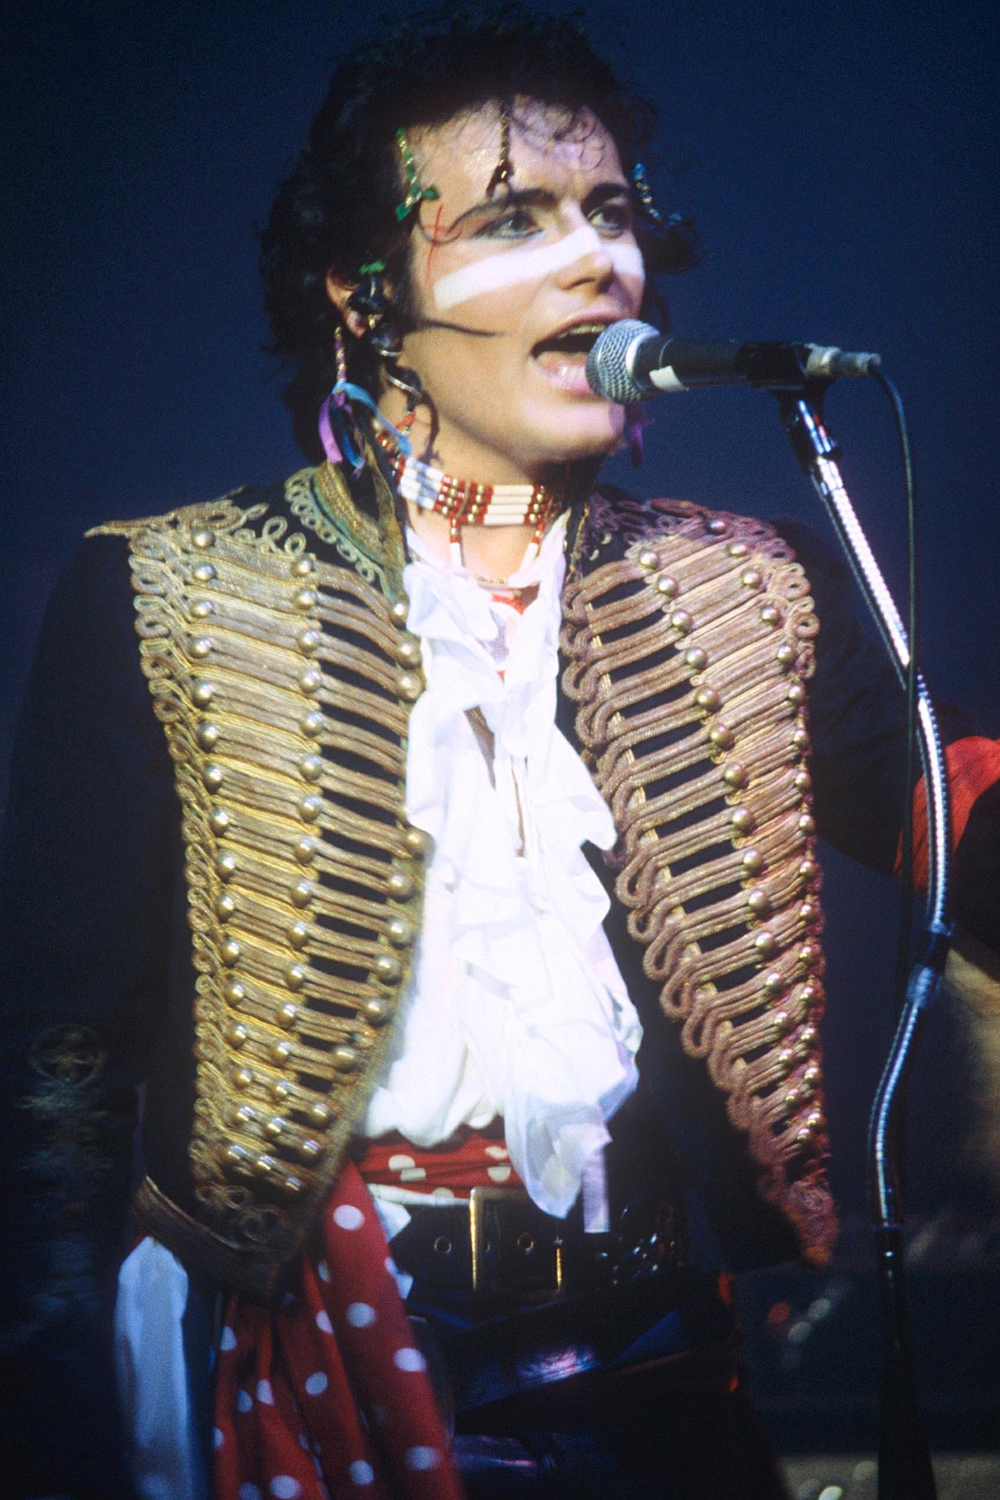 Adam Ant singing at one of his concerts